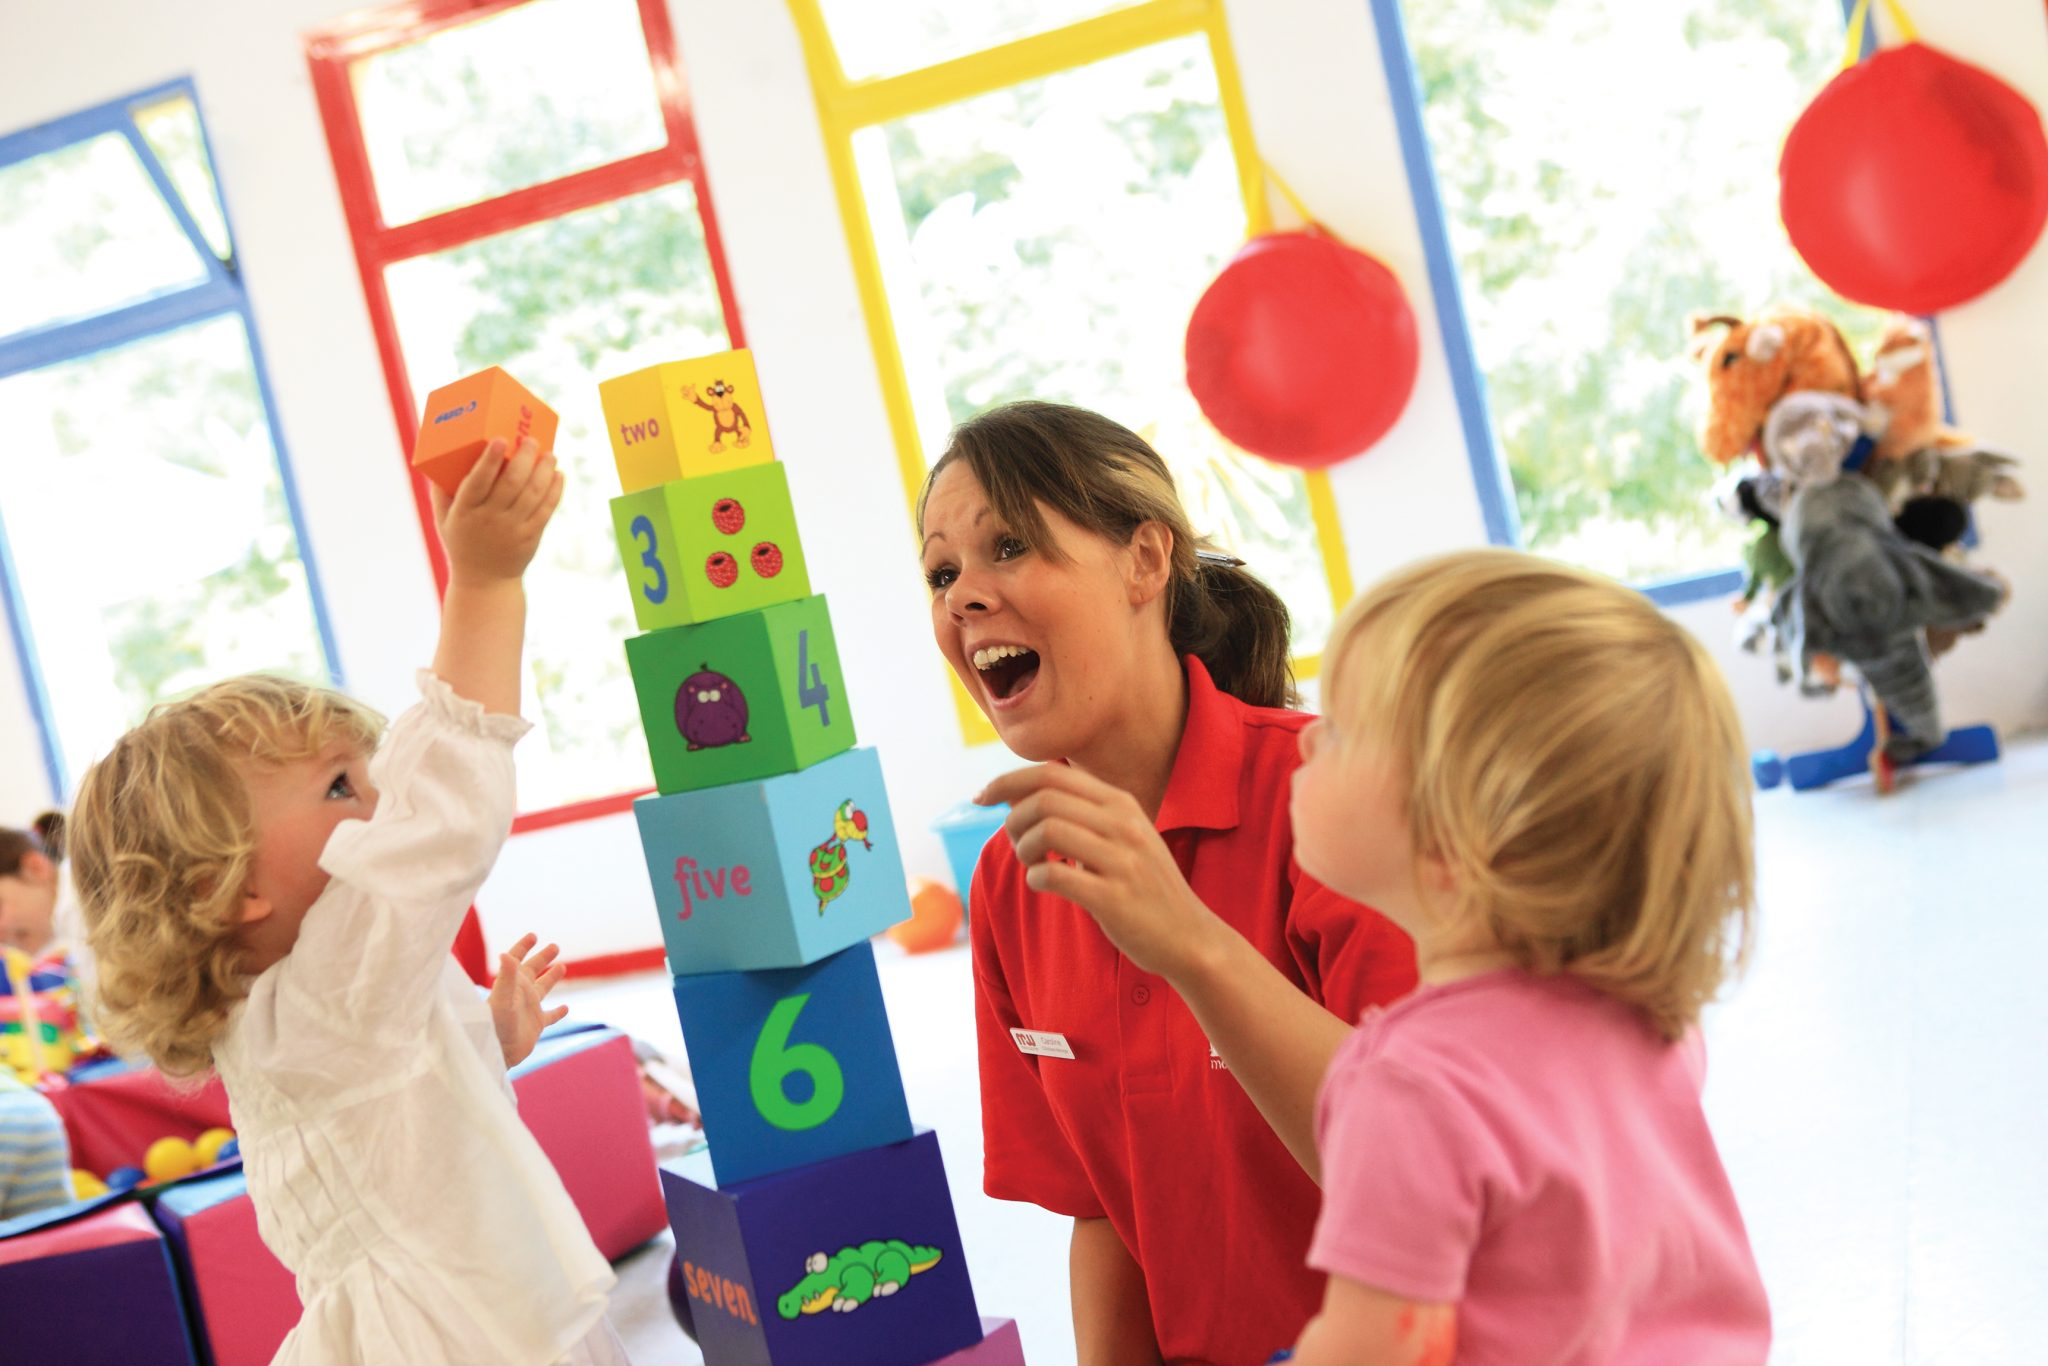 Child care and Education will provide one of 15 core qualification areas for the new T Levels